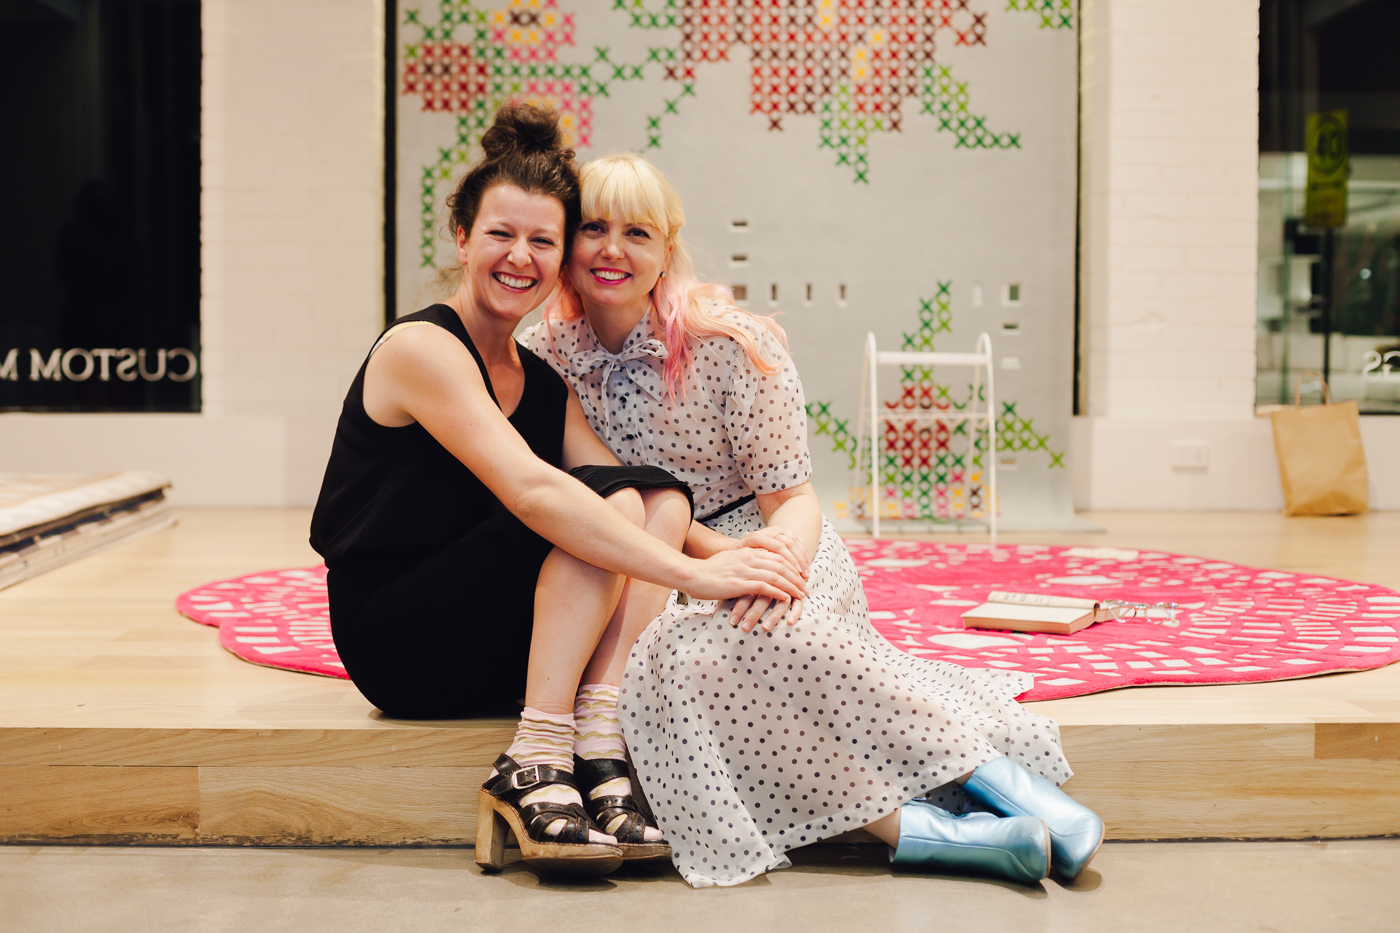 With Cassie Lucas of Firecracker Event | NEW AGAIN by Petrina Turner Design for Designer Rugs | The launch event